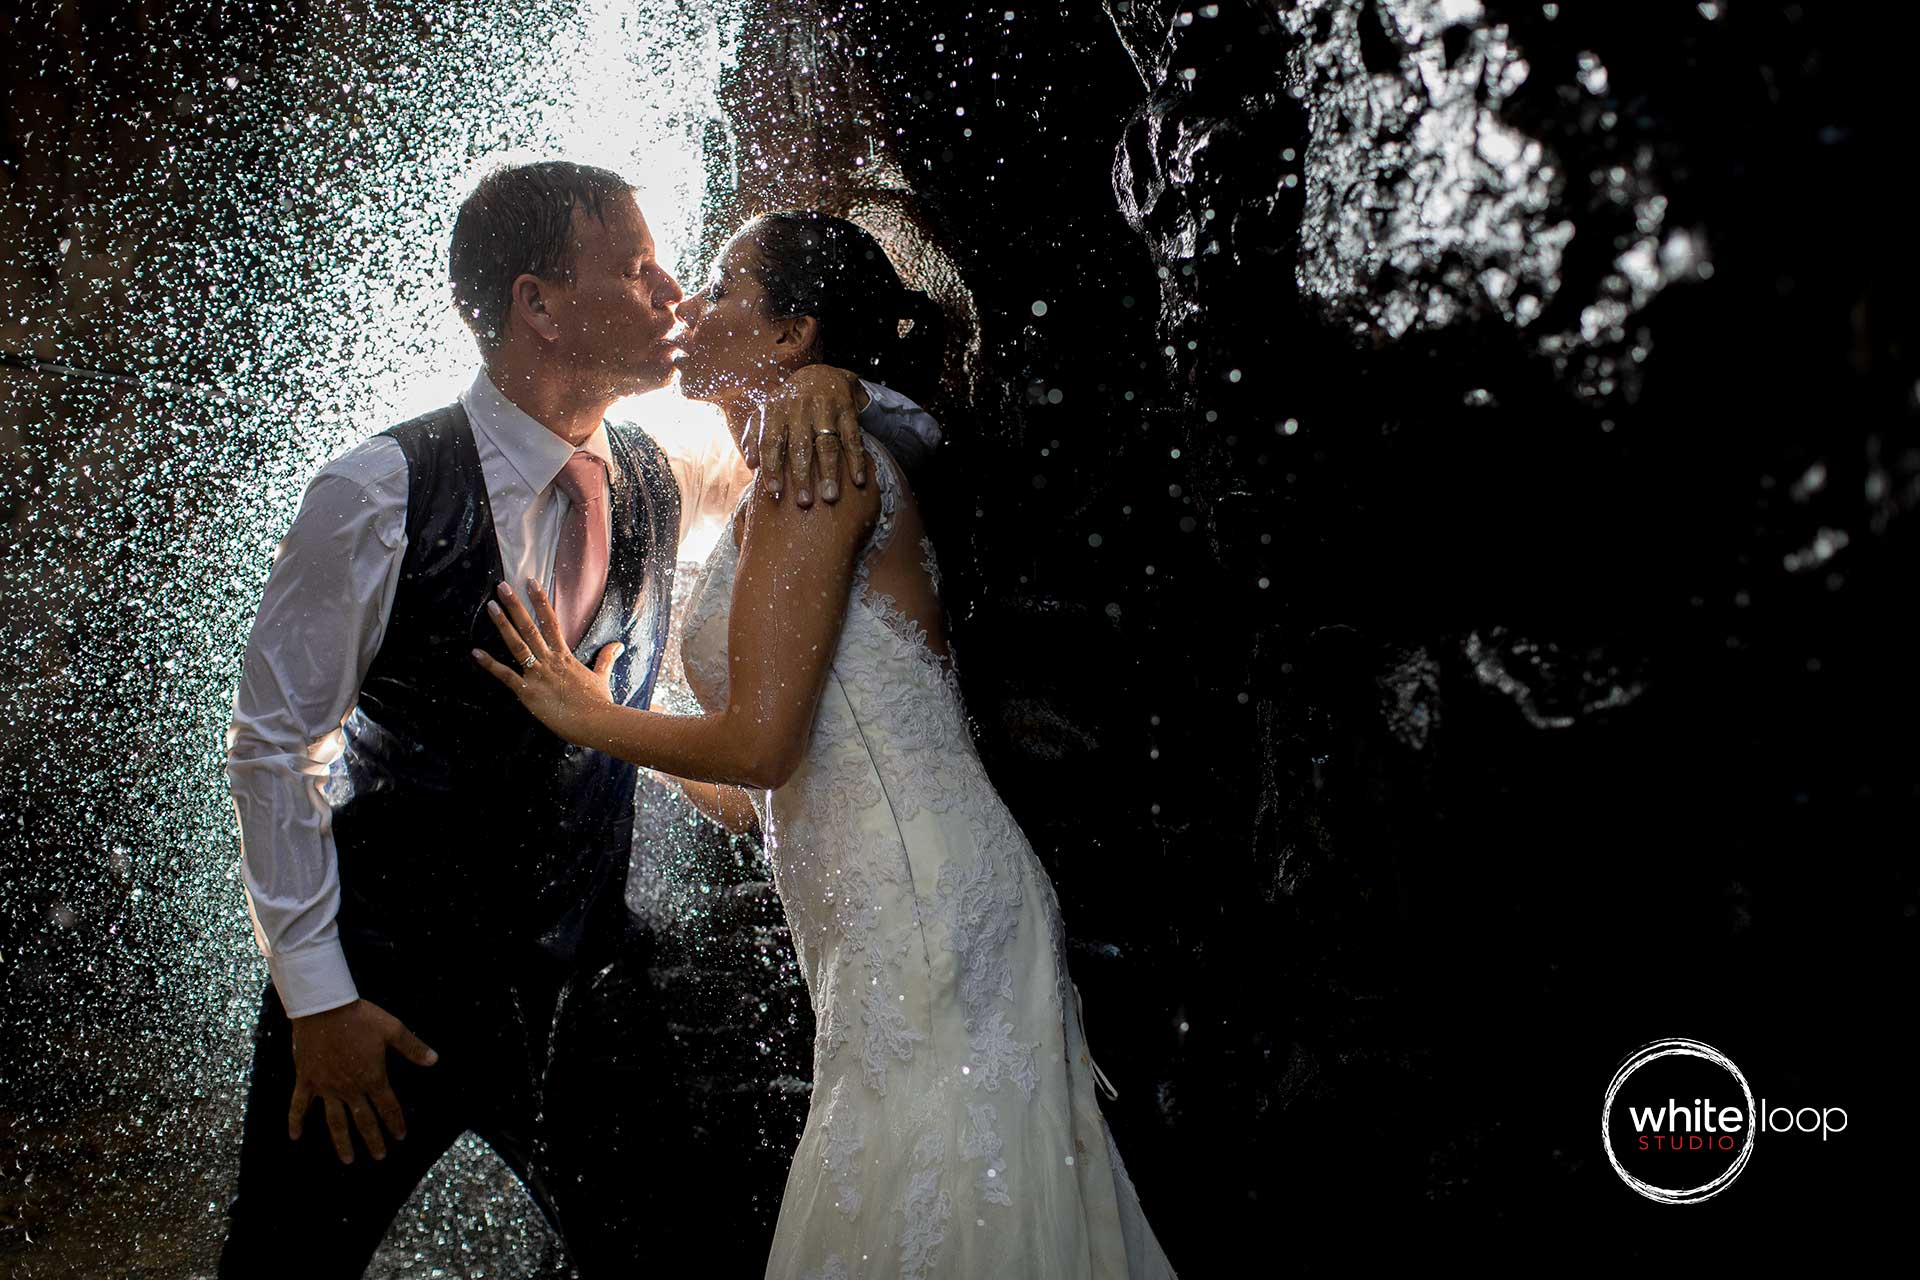 The bride and groom kissing under the waterfall. Illuminated by a light simulated.